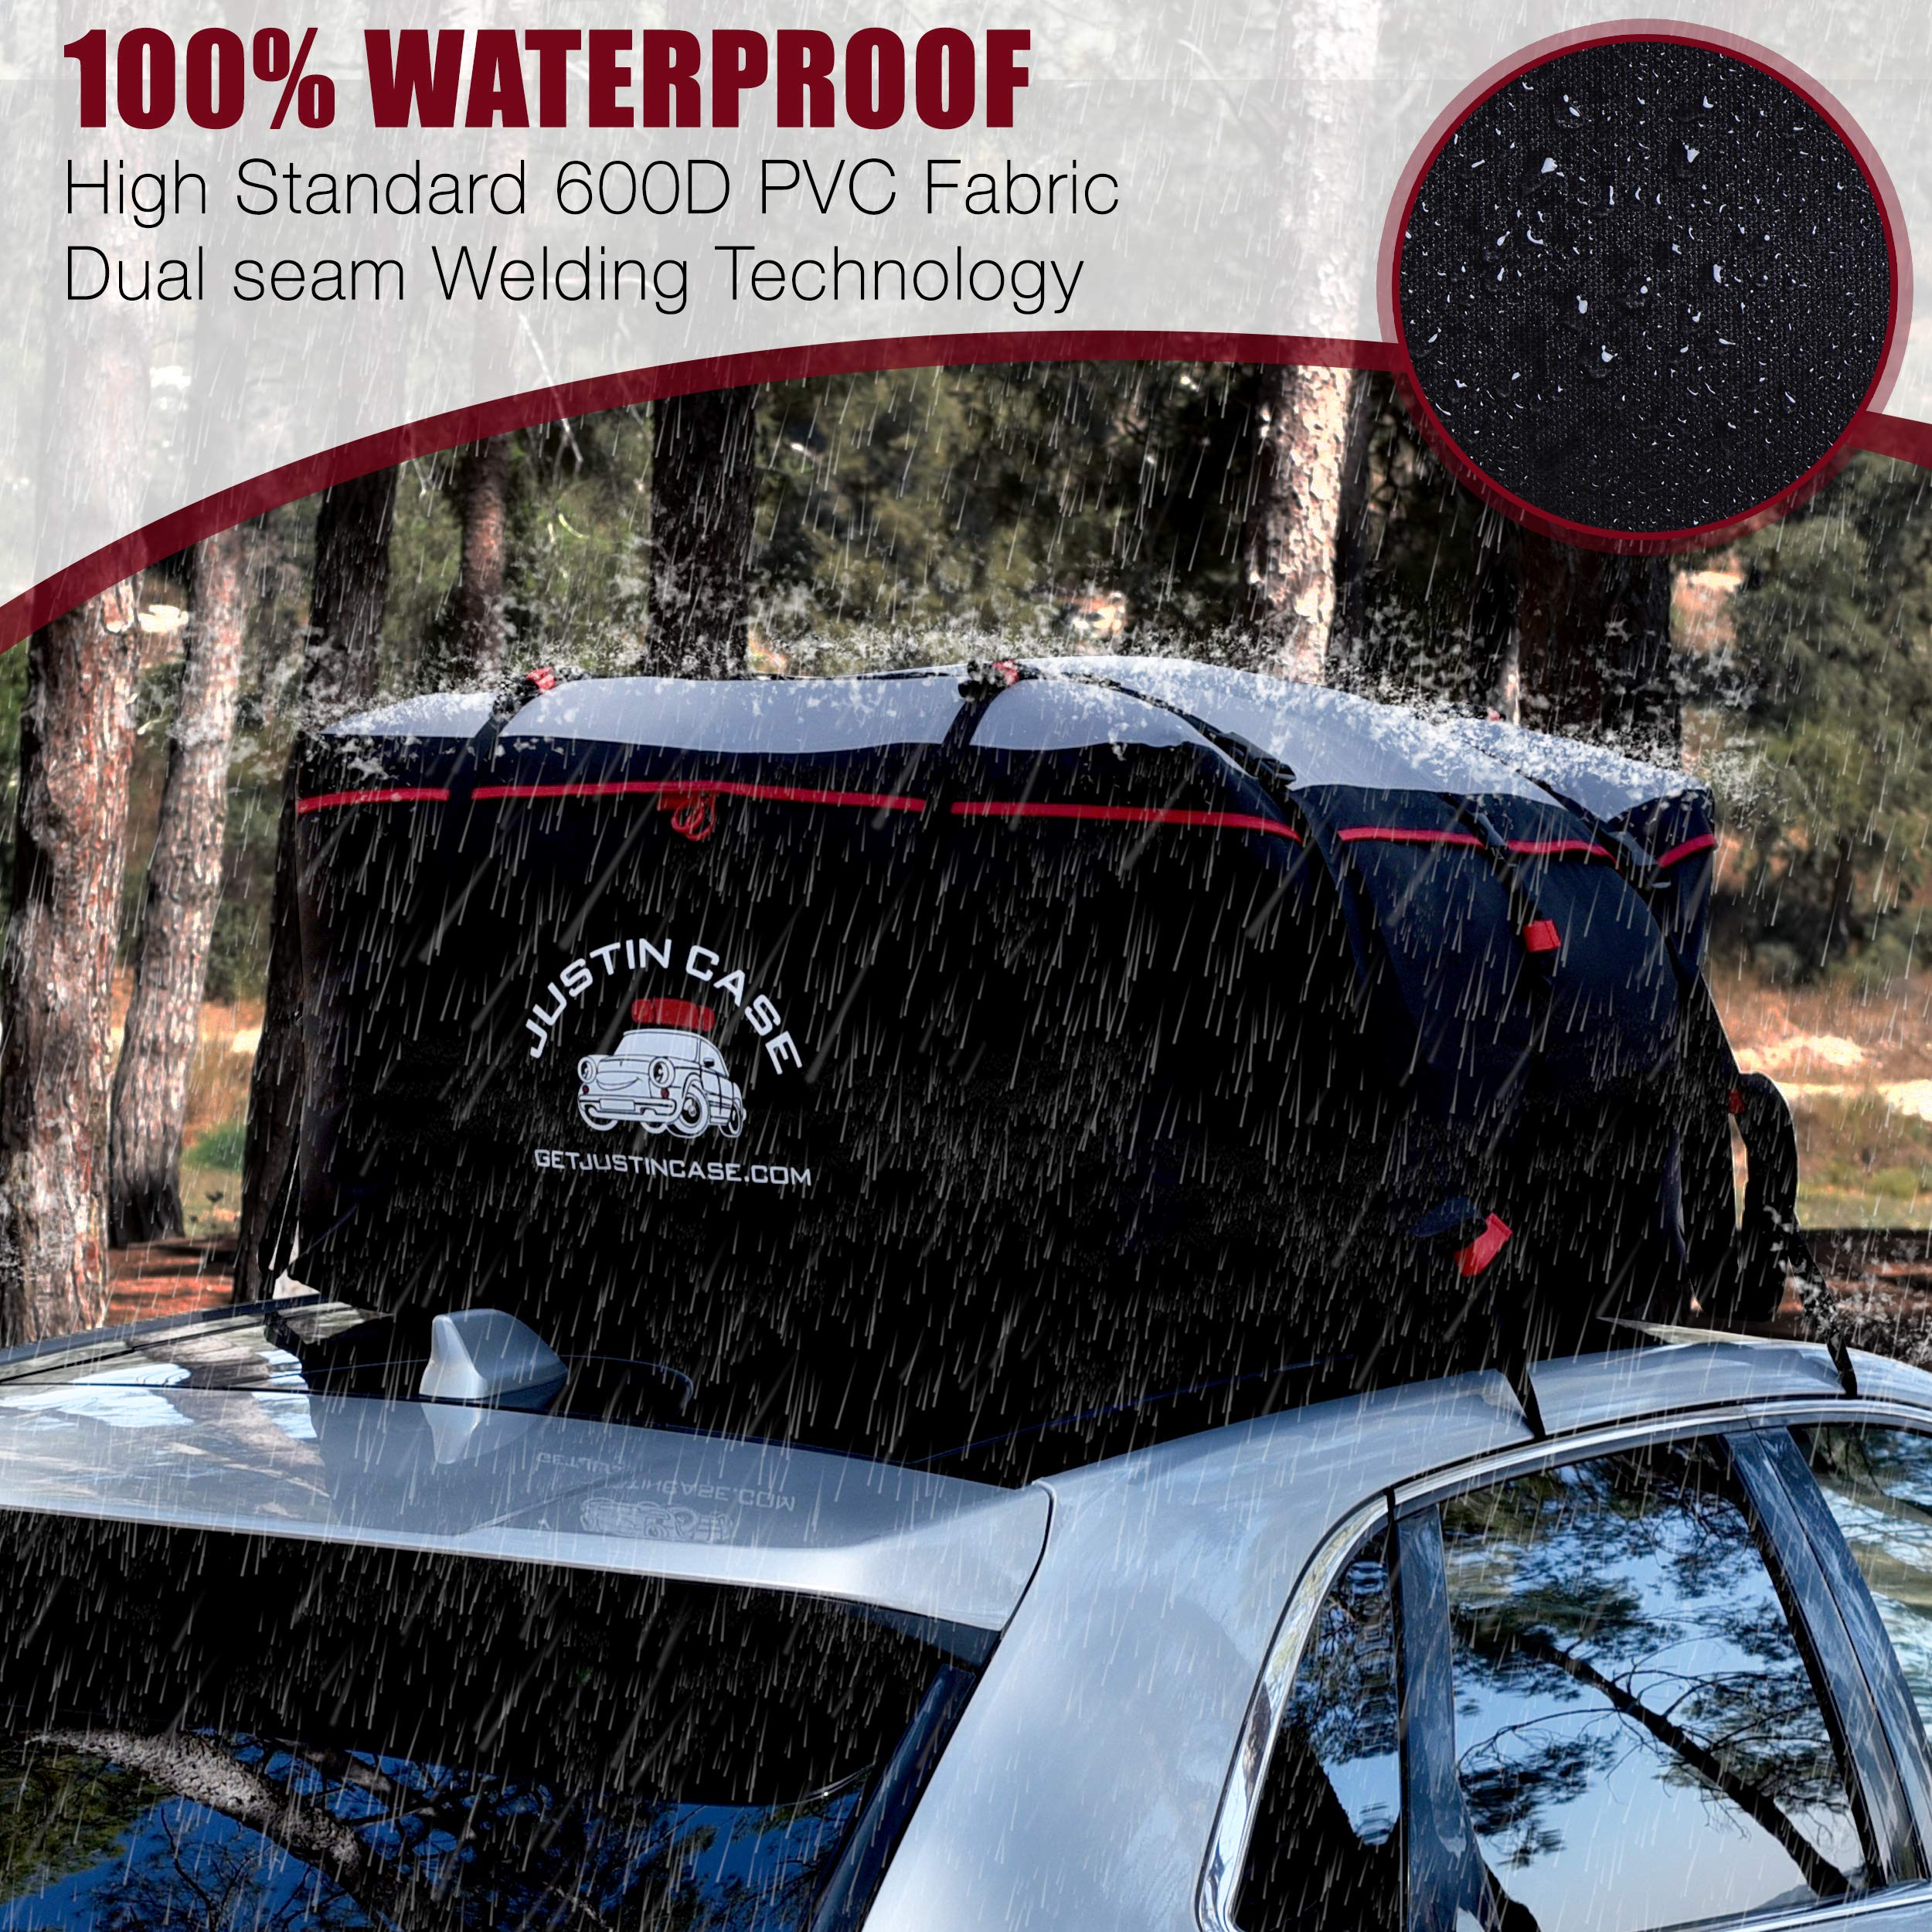 Car Roof Bag /& Protection Mat : 2 Yr Warranty Extra Large RoofBag 19 Cubic Feet Car Top Carriers for Vehicles with Racks or Without Rooftop Cargo Carrier Bag 100/% Waterproof